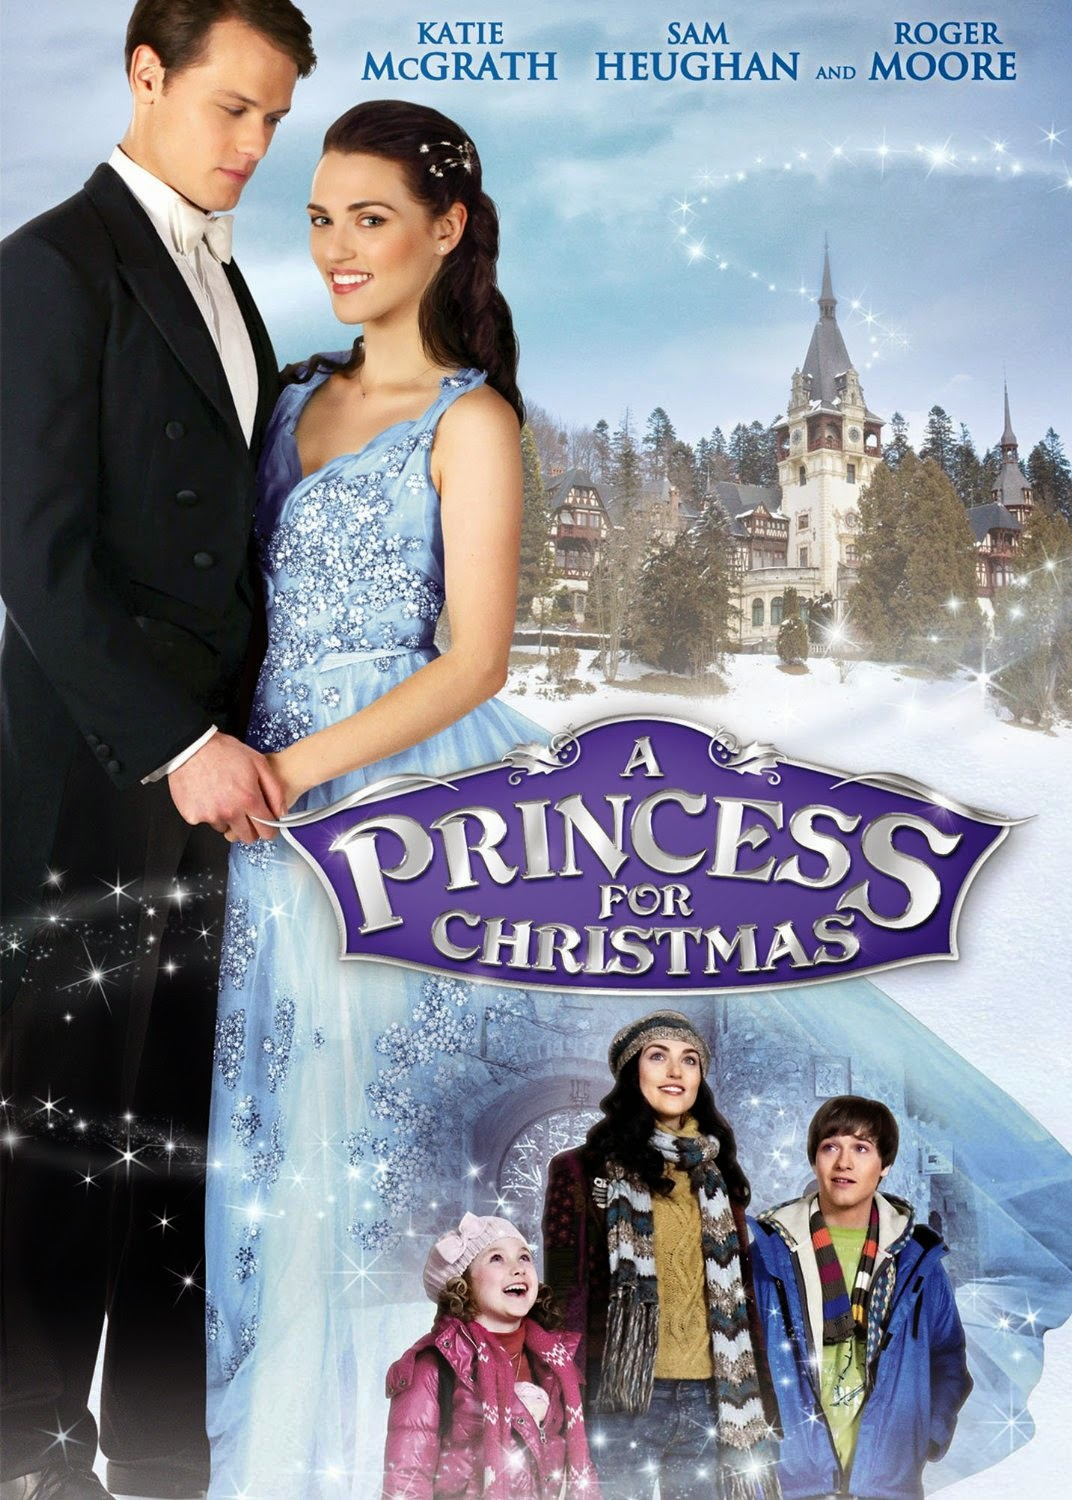 DVD Review - A Princess For Christmas